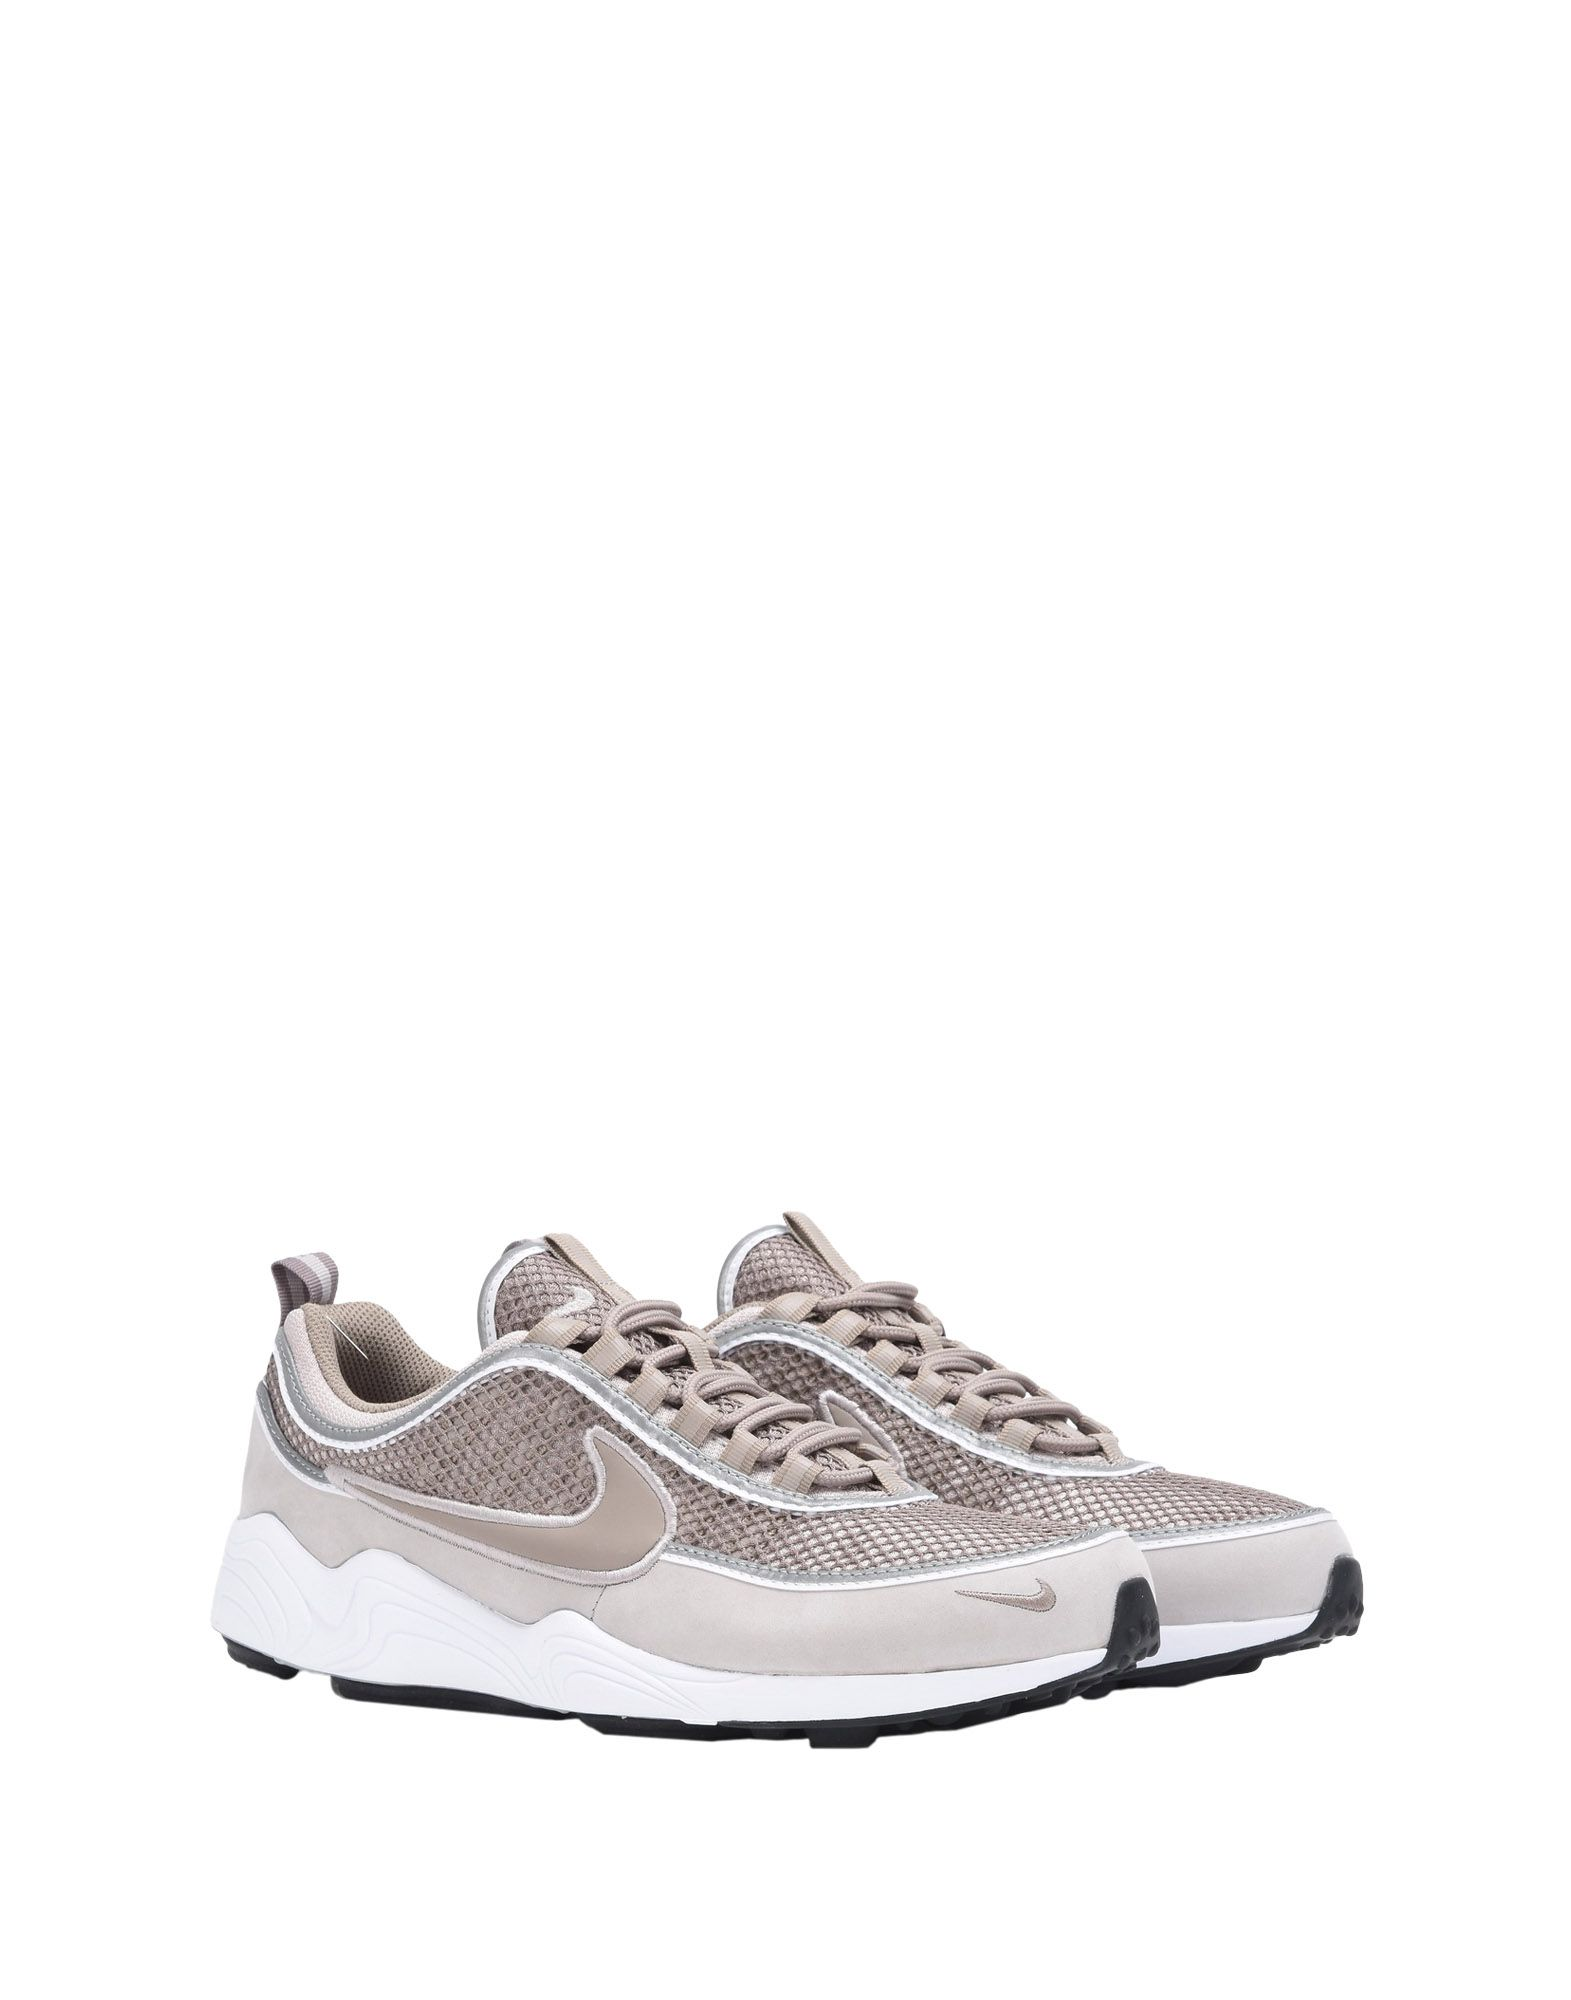 sports shoes b5550 d9667 ... Sneakers Nike Air Zoom Spiridon 16 - Homme - Sneakers Nike sur